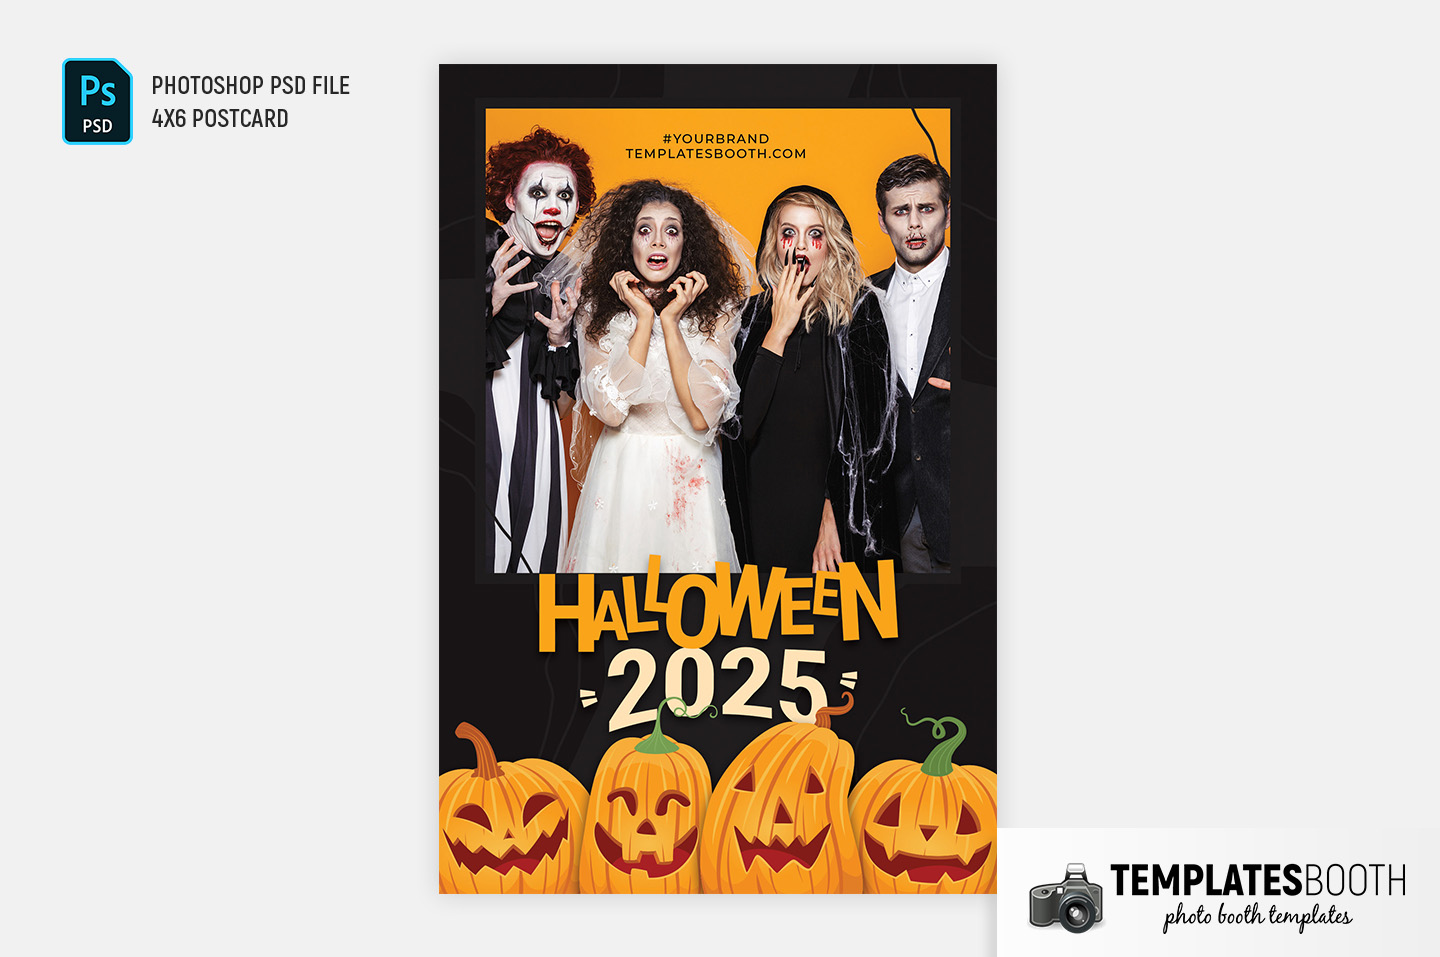 Halloween Photo Booth Template (4x6 Portrait)